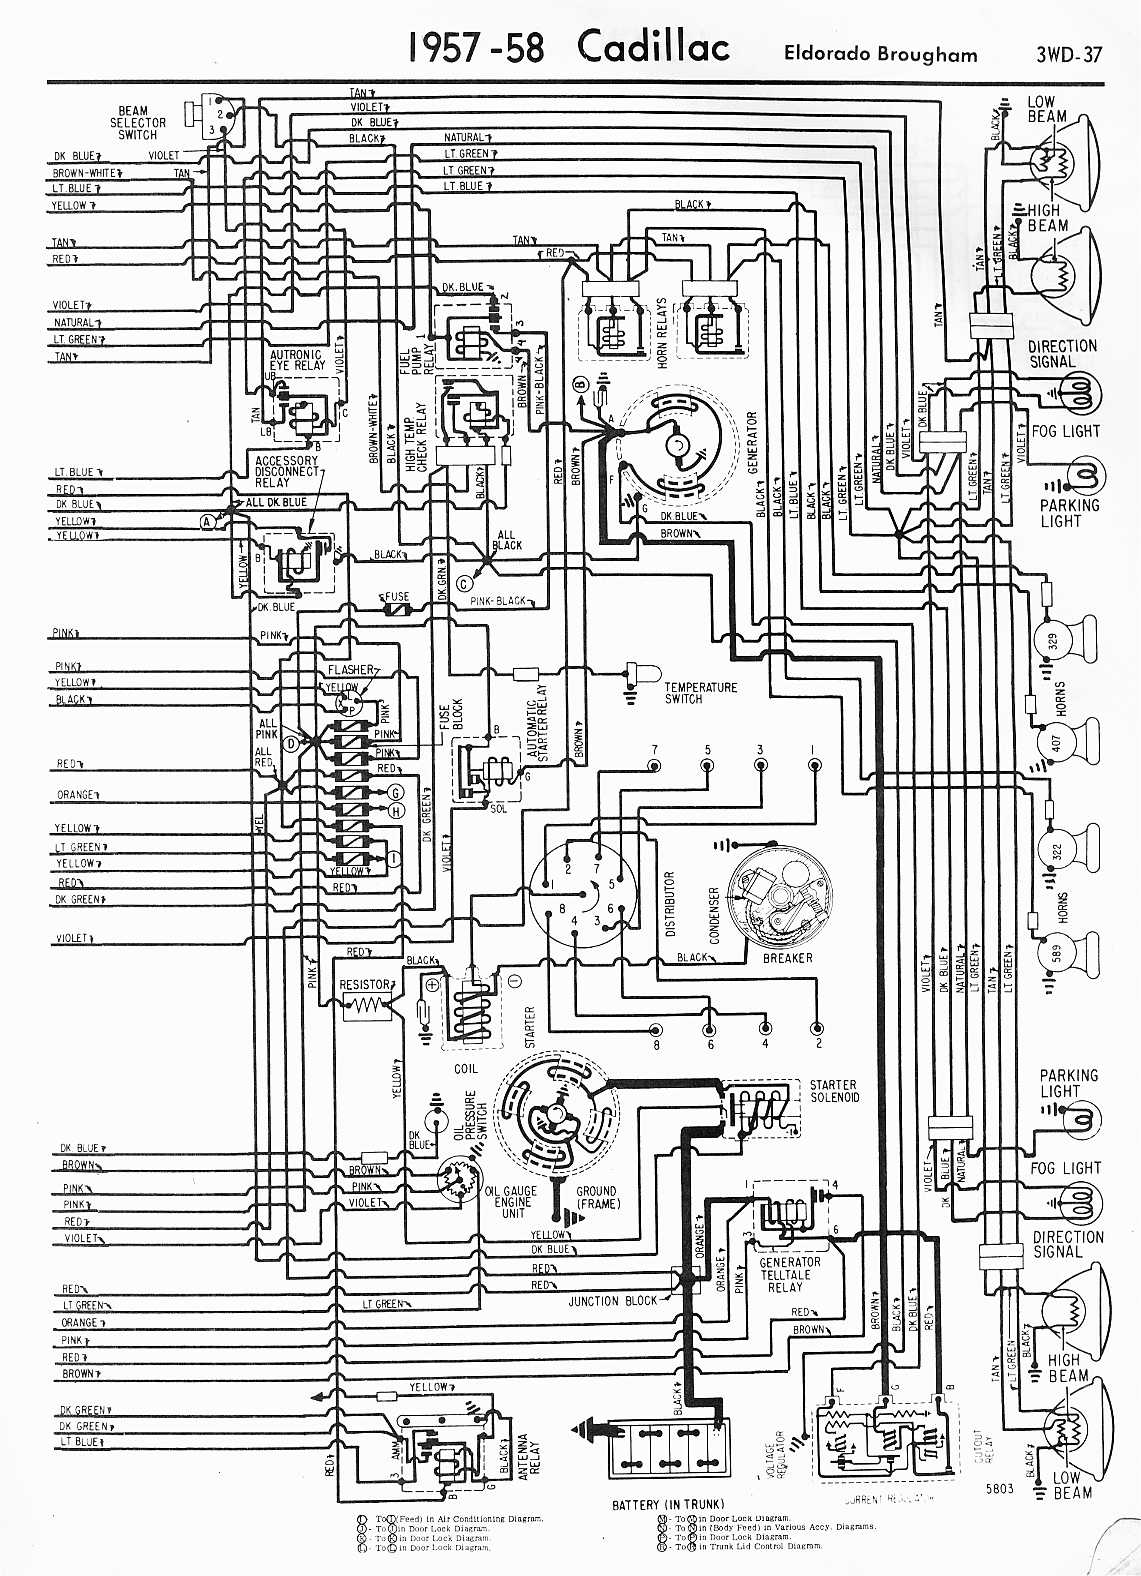 1954 Cadillac Wiring Diagrams List Of Schematic Circuit Diagram Ford Car 1962 Schematics Rh Thyl Co Uk